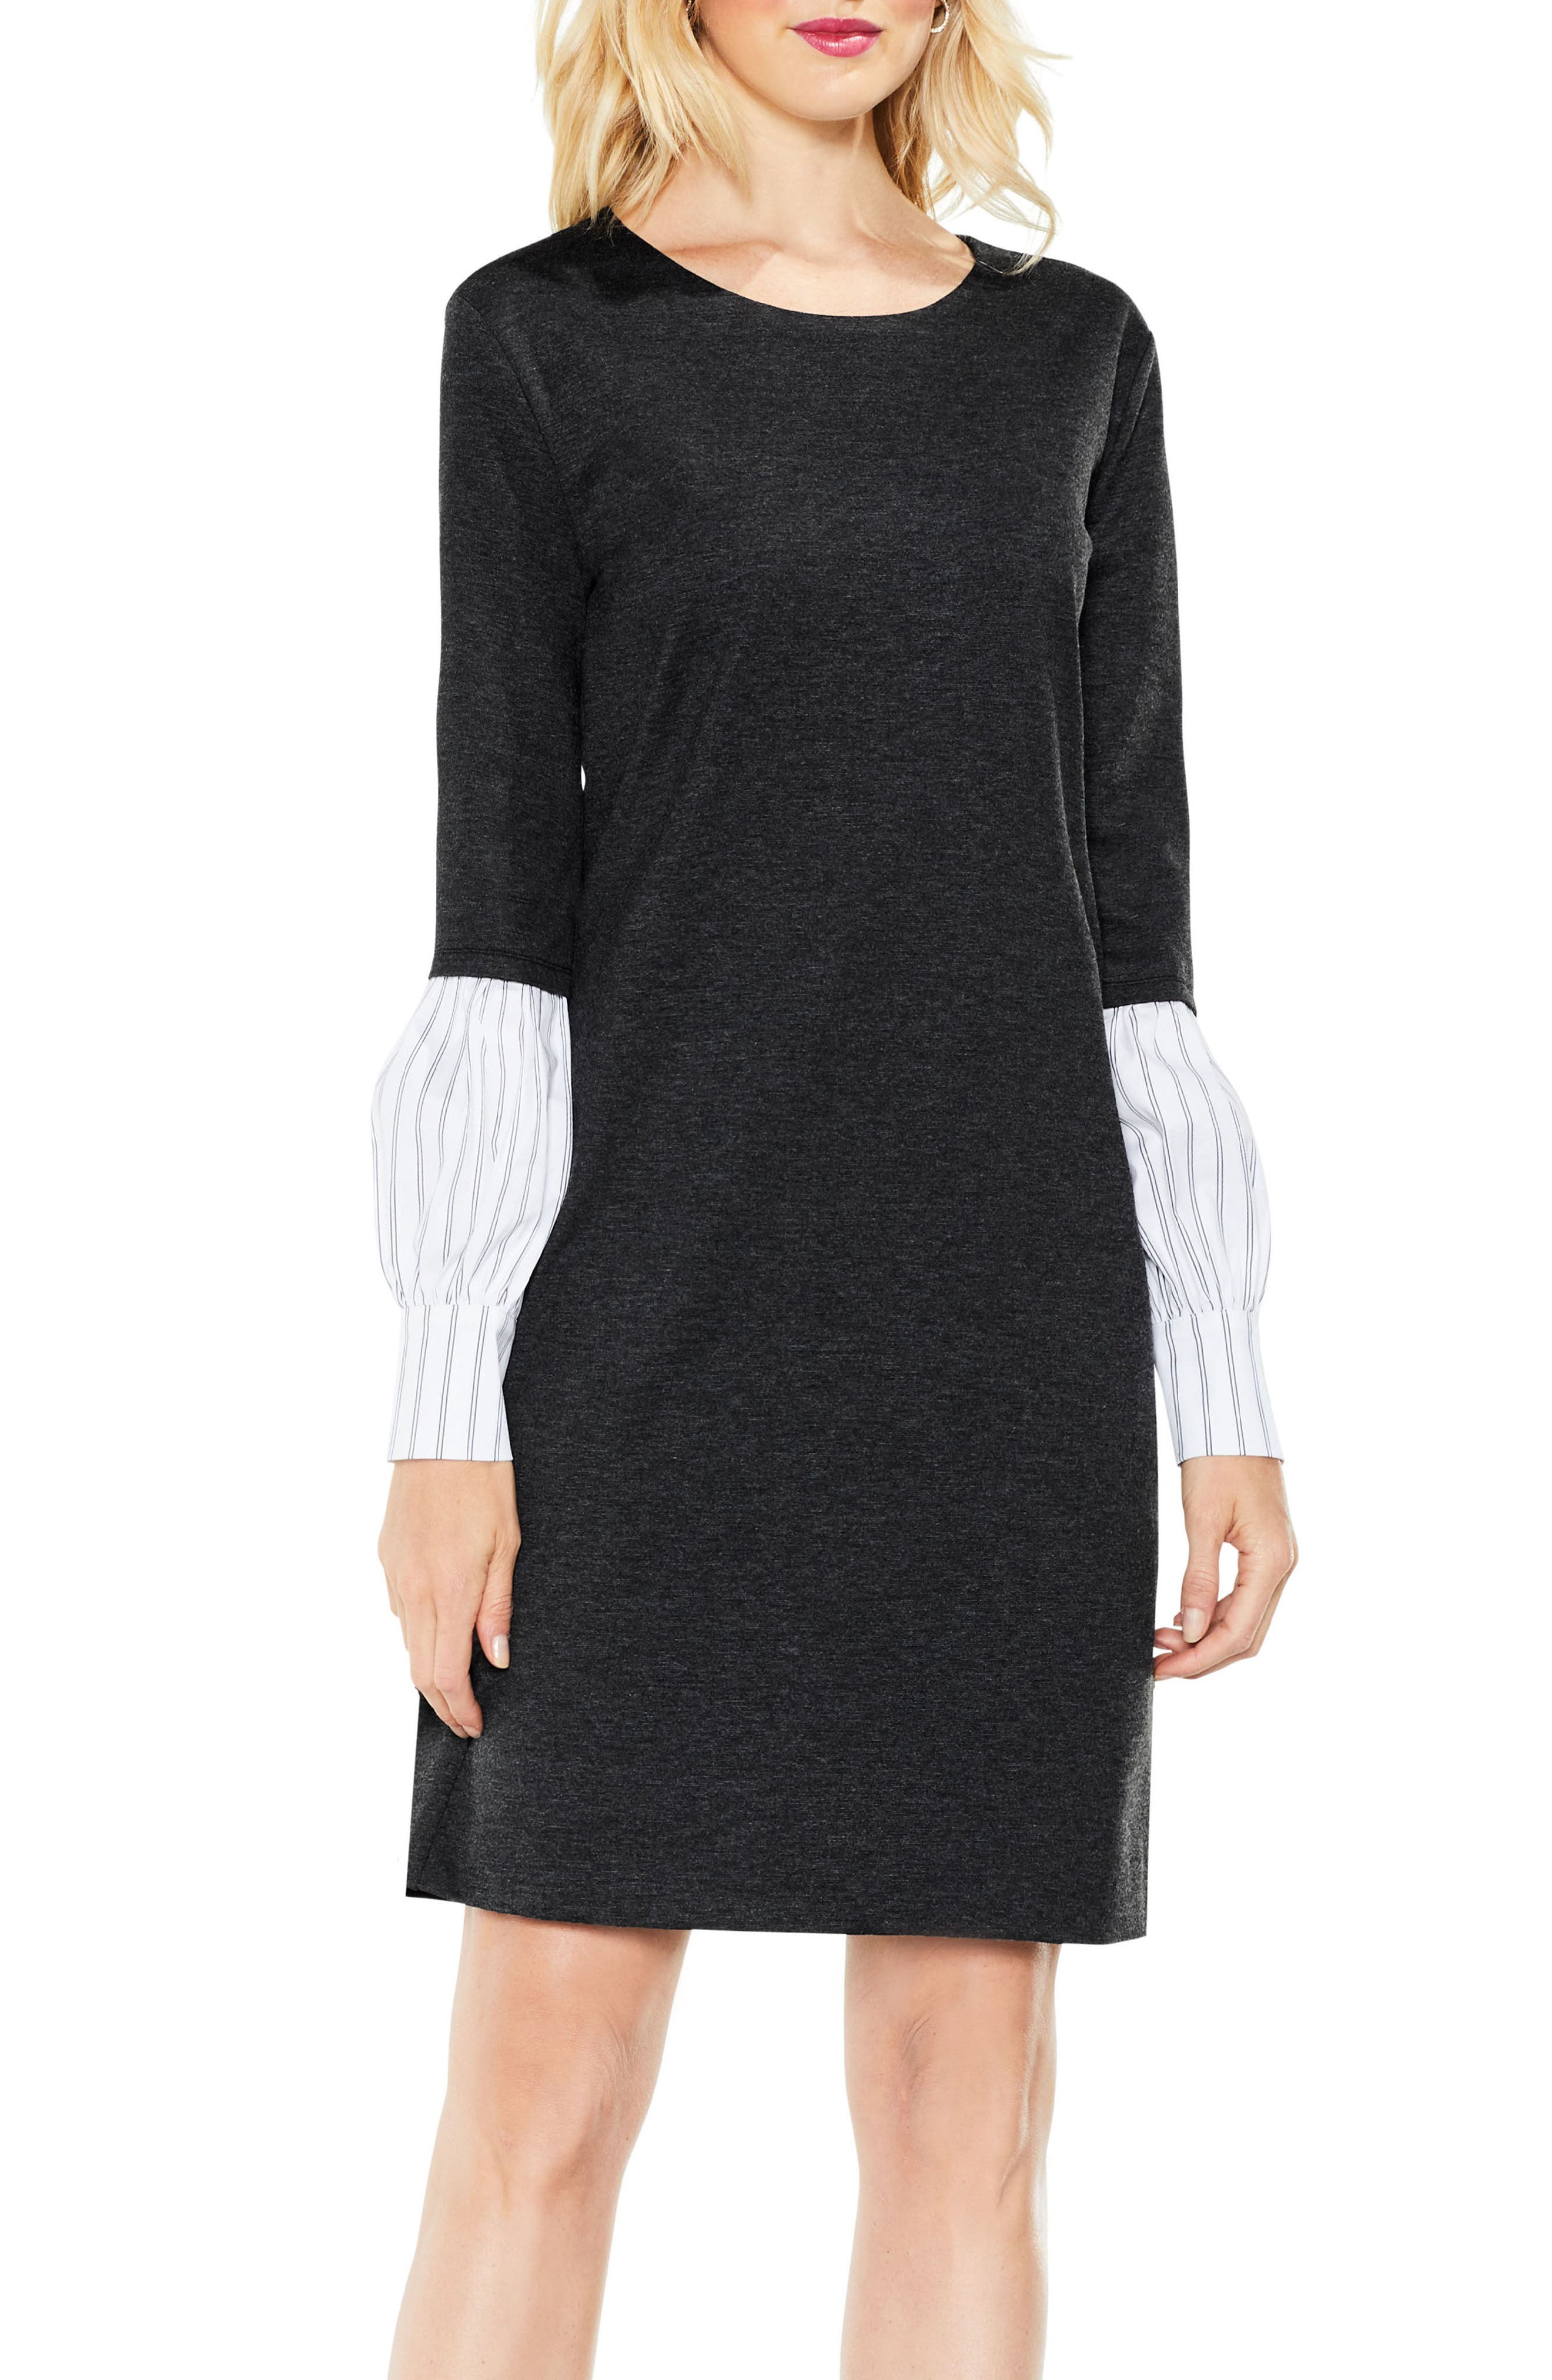 Alternate Image 1 Selected - Vince Camuto Bubble Sleeve Mix Media Dress